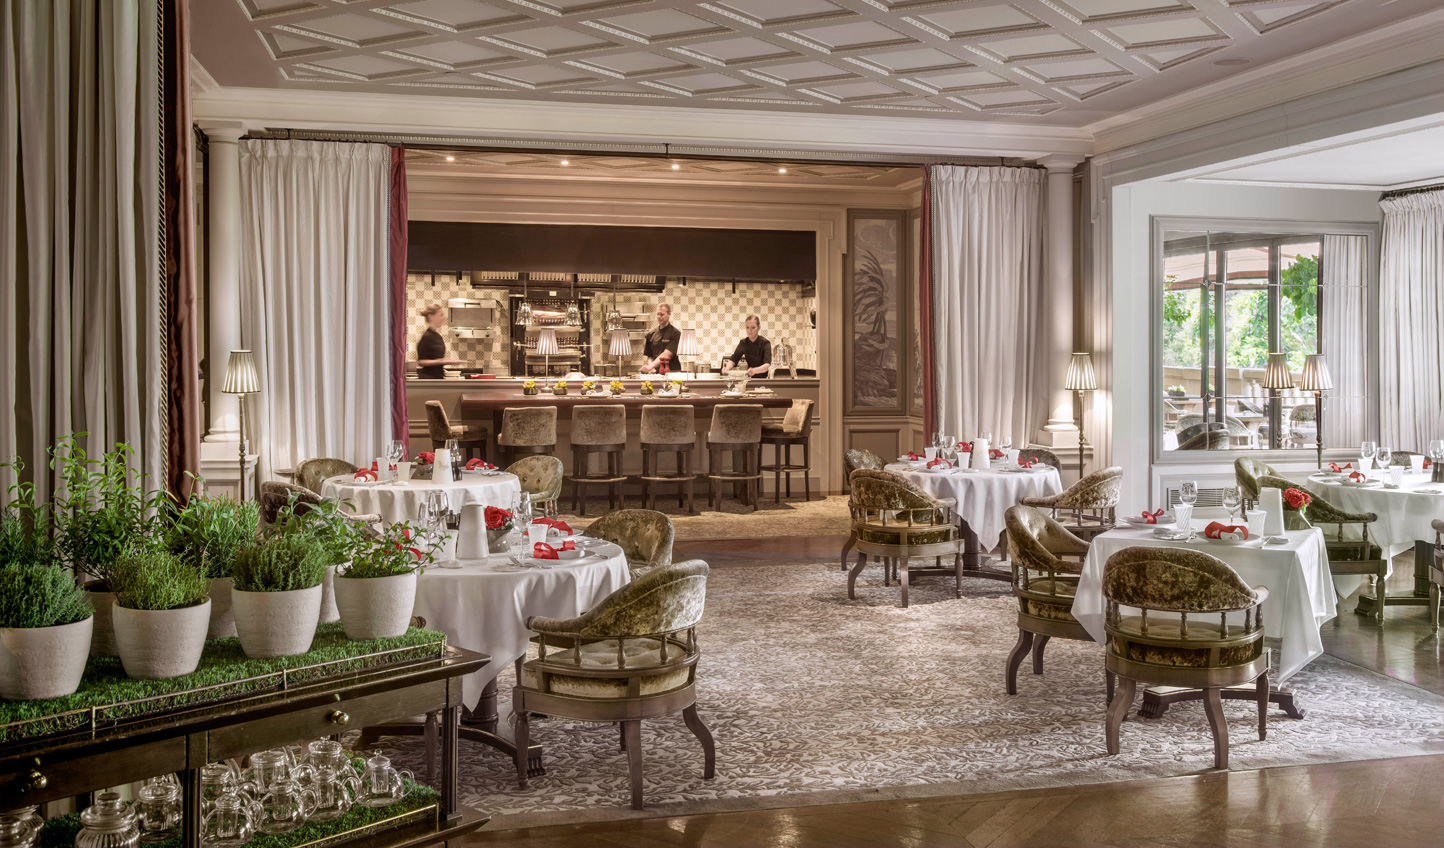 A spot of indulgence at the two Michelin-starred Metropole Monte-Carlo Restaurant